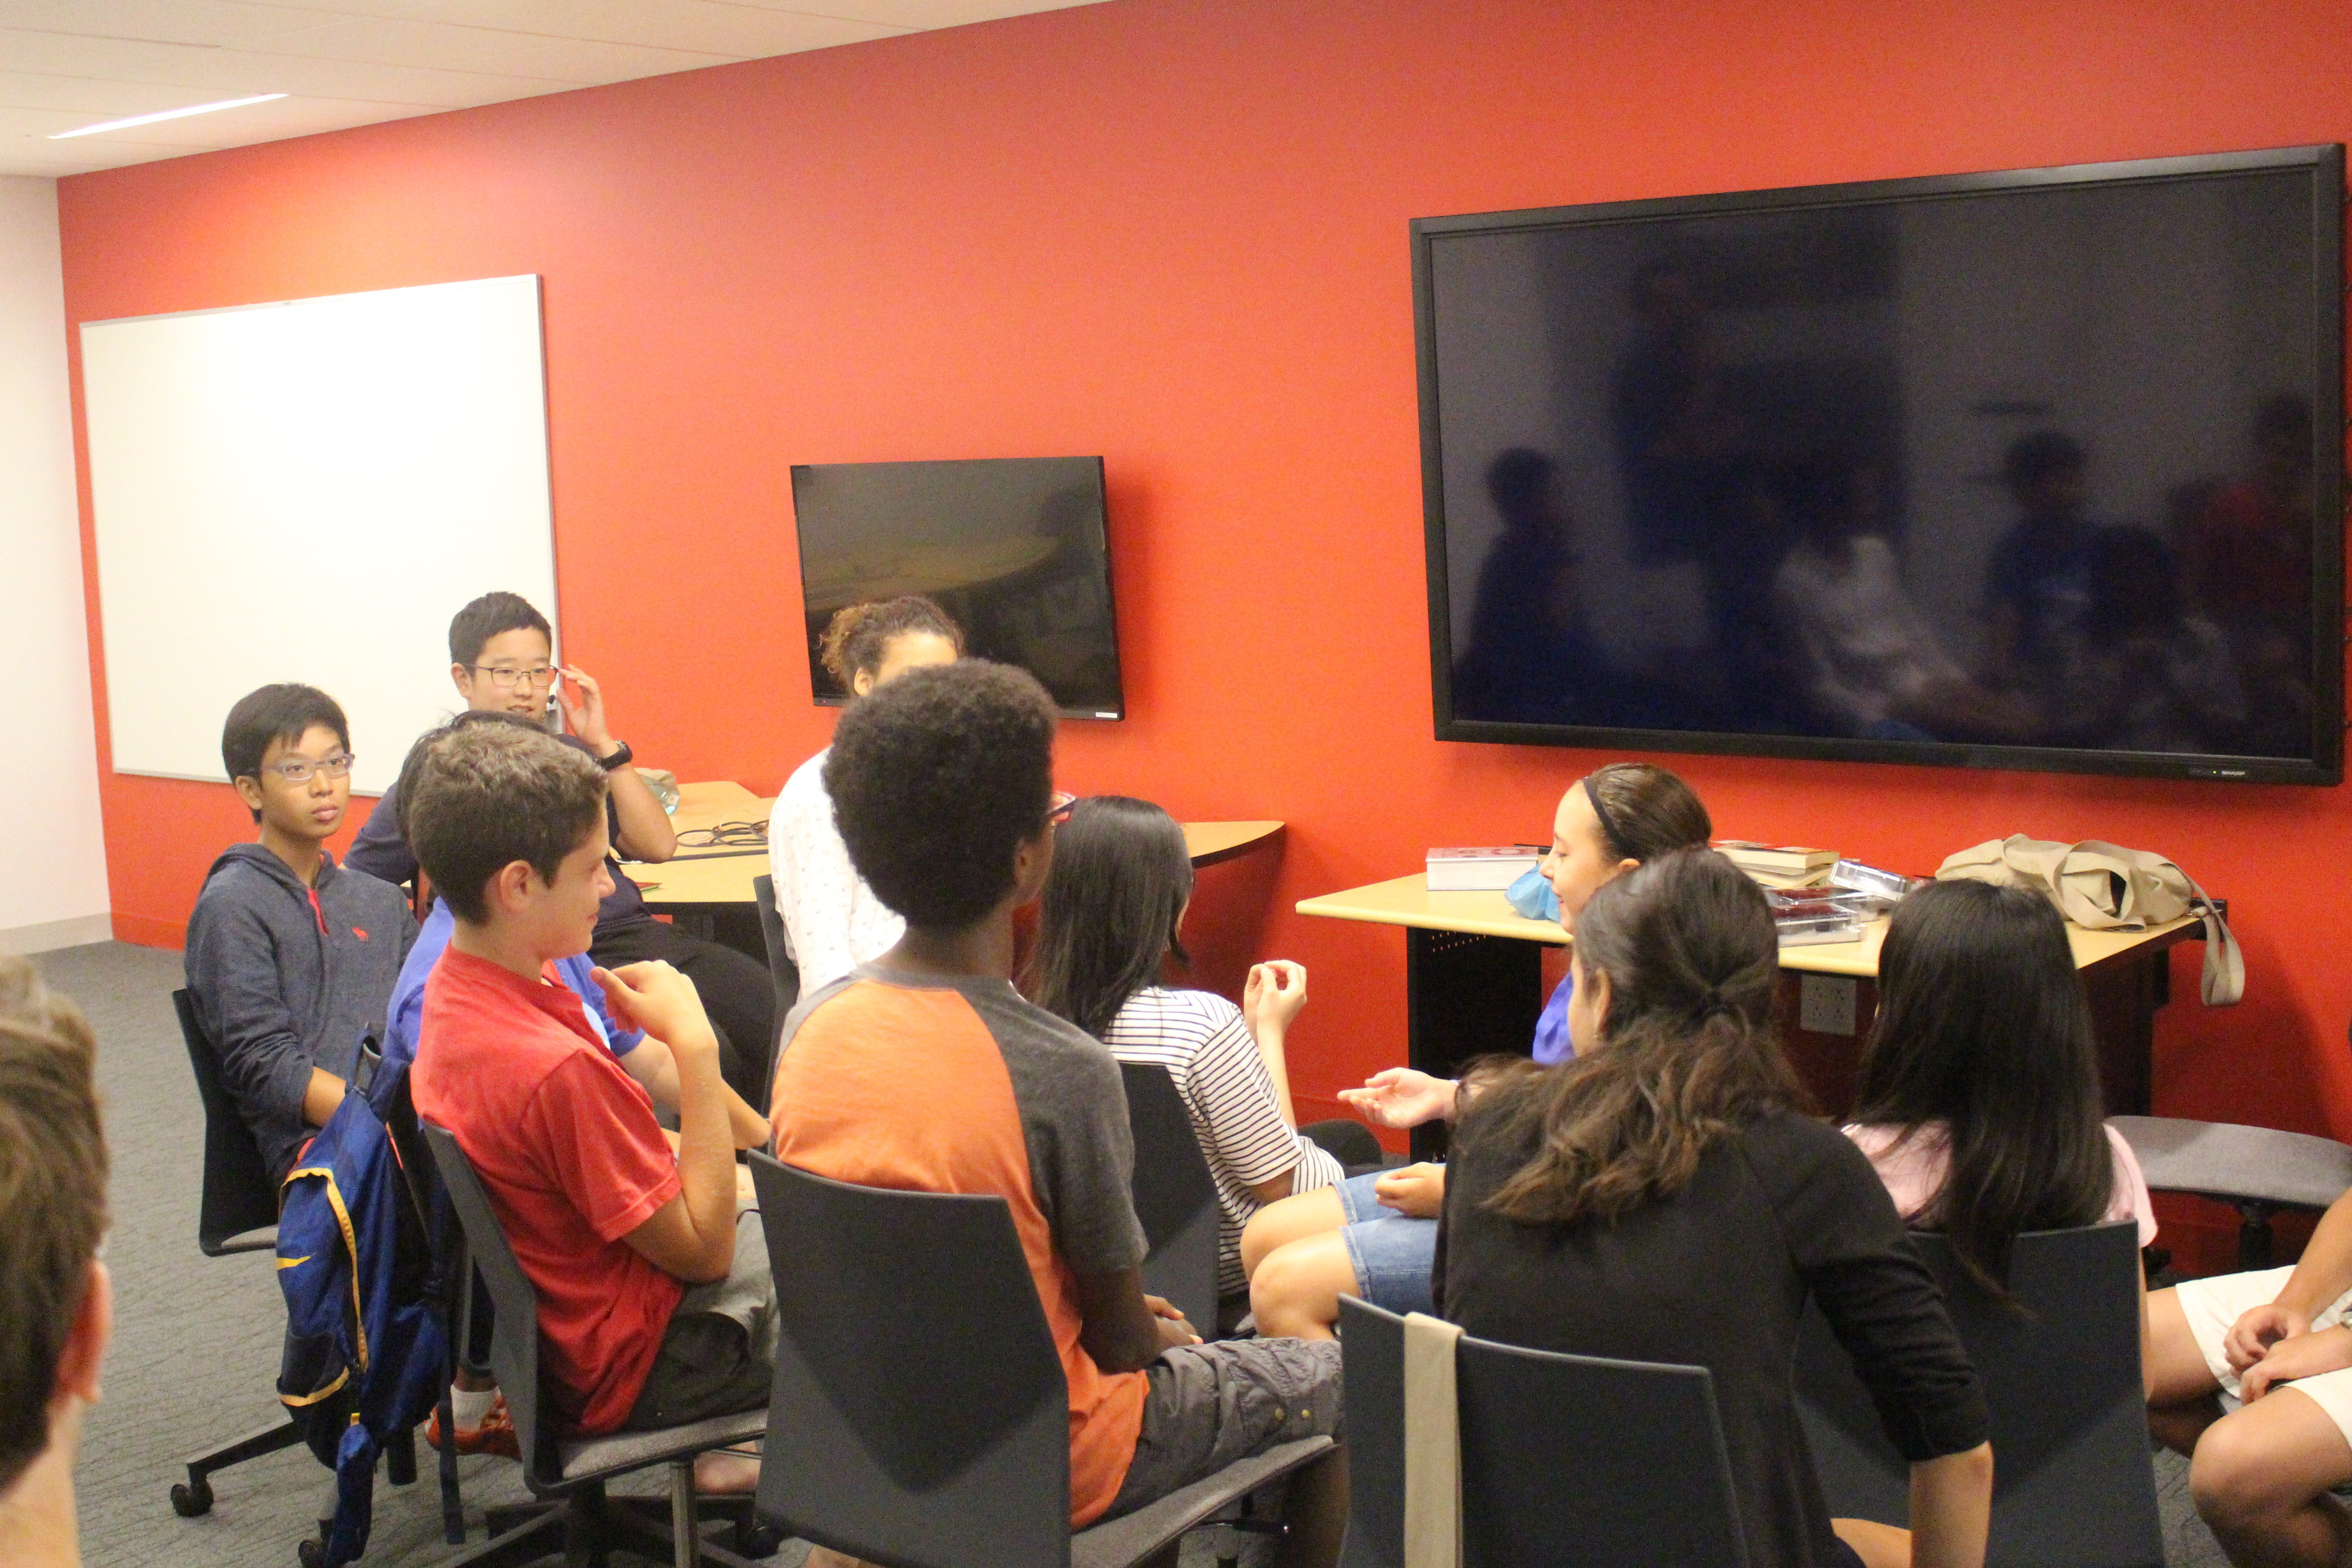 Seventh and Eighth Graders settle down to watch the debut of their classmates first films.